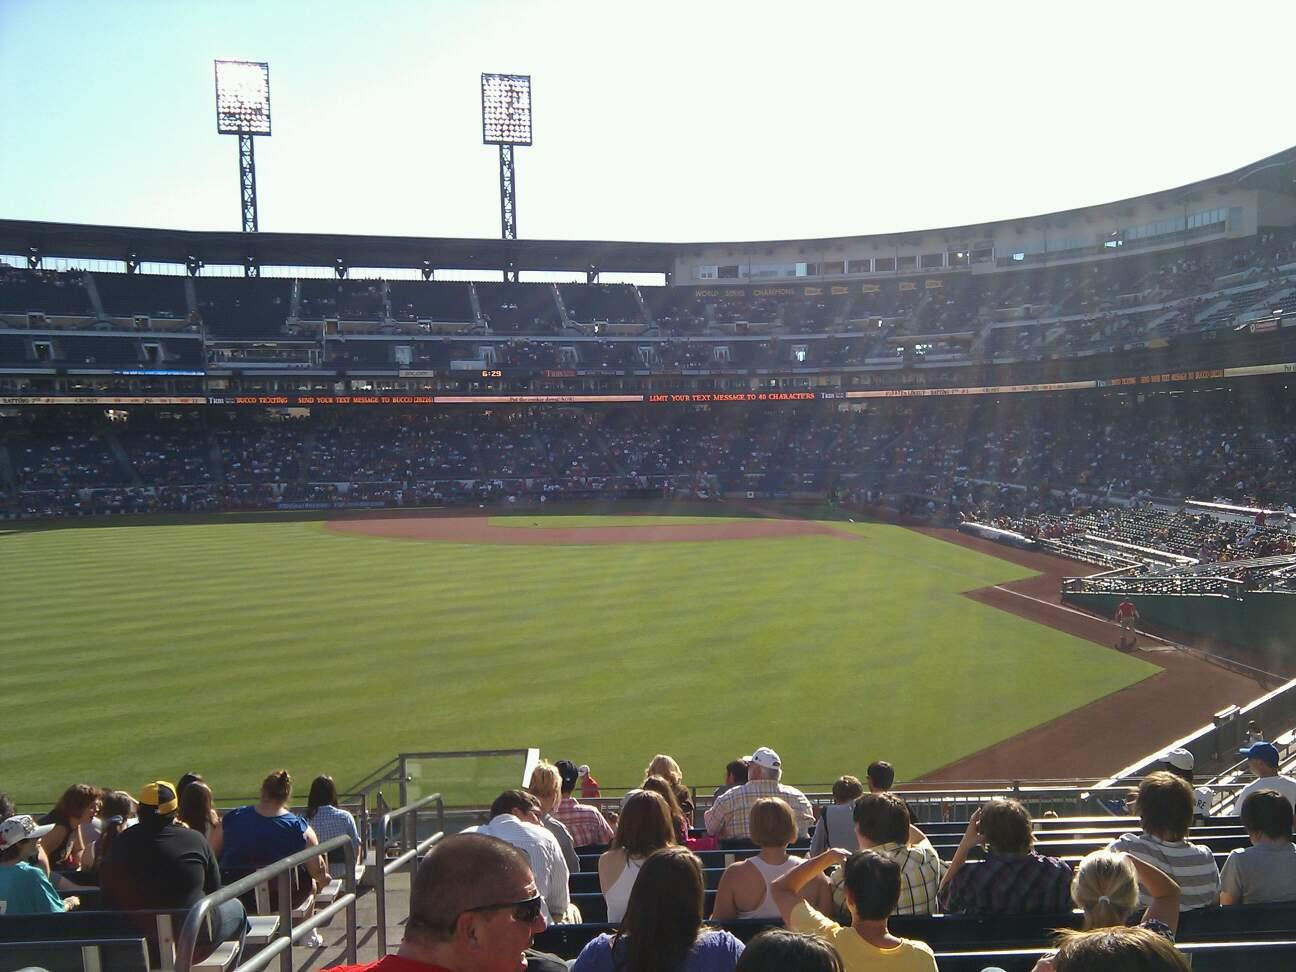 PNC Park Section 235 Row n Seat 20